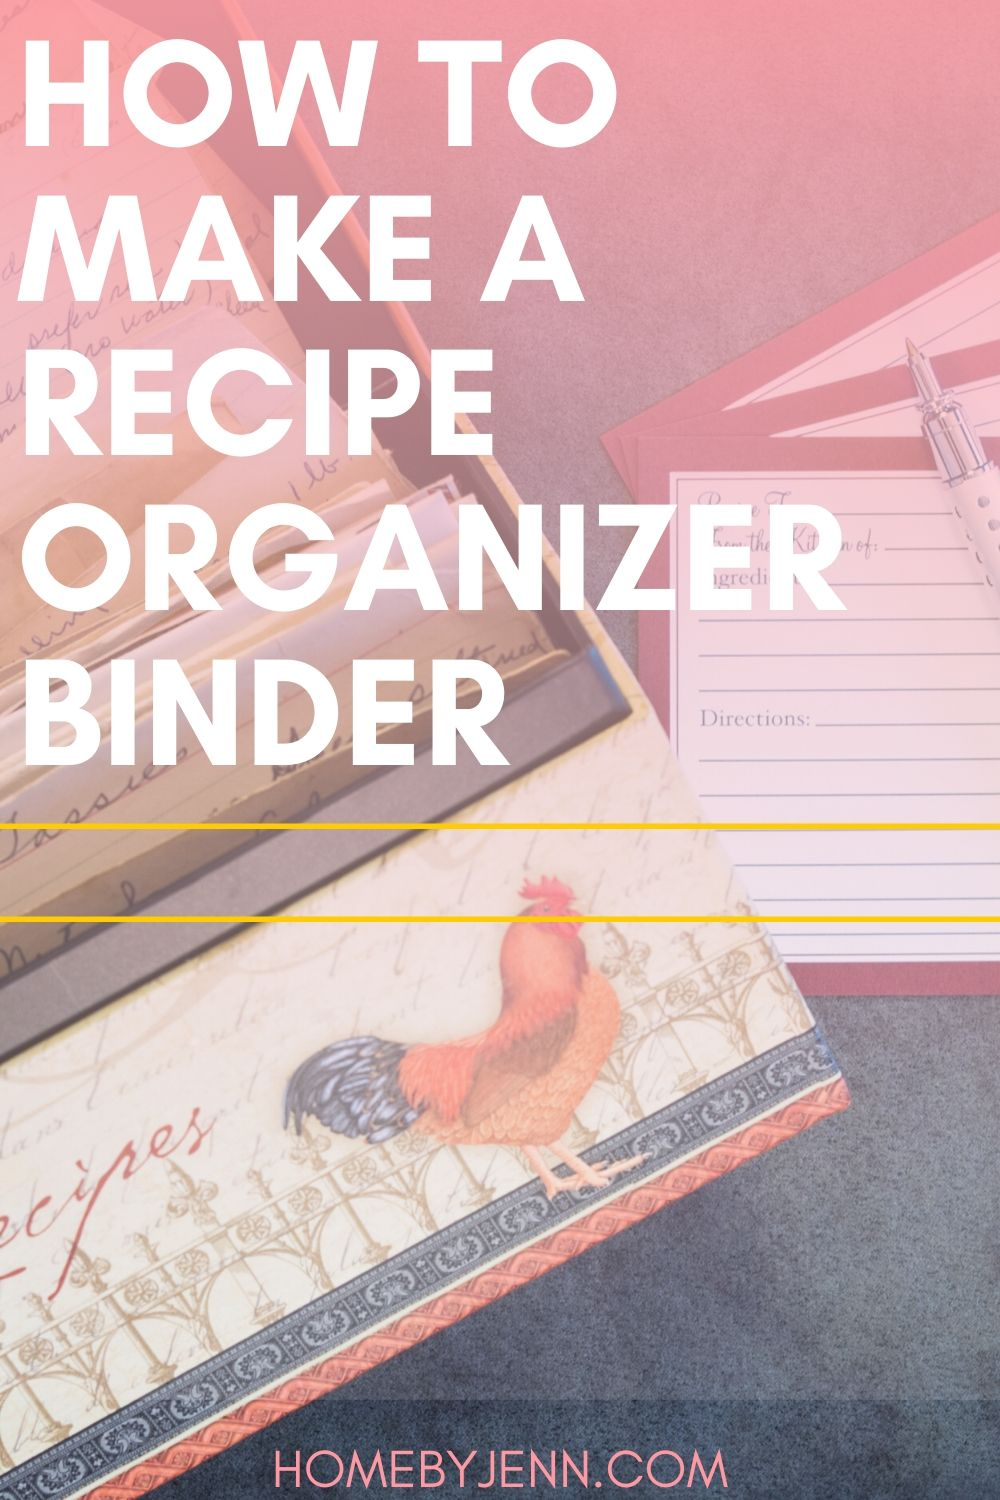 Organize your recipes in one place with a recipe binder. Having a recipe organizer binder is a life saver. #recipebinder #organize #organizepaperclutter #recipebinder #homebinder #planner via @homebyjenn